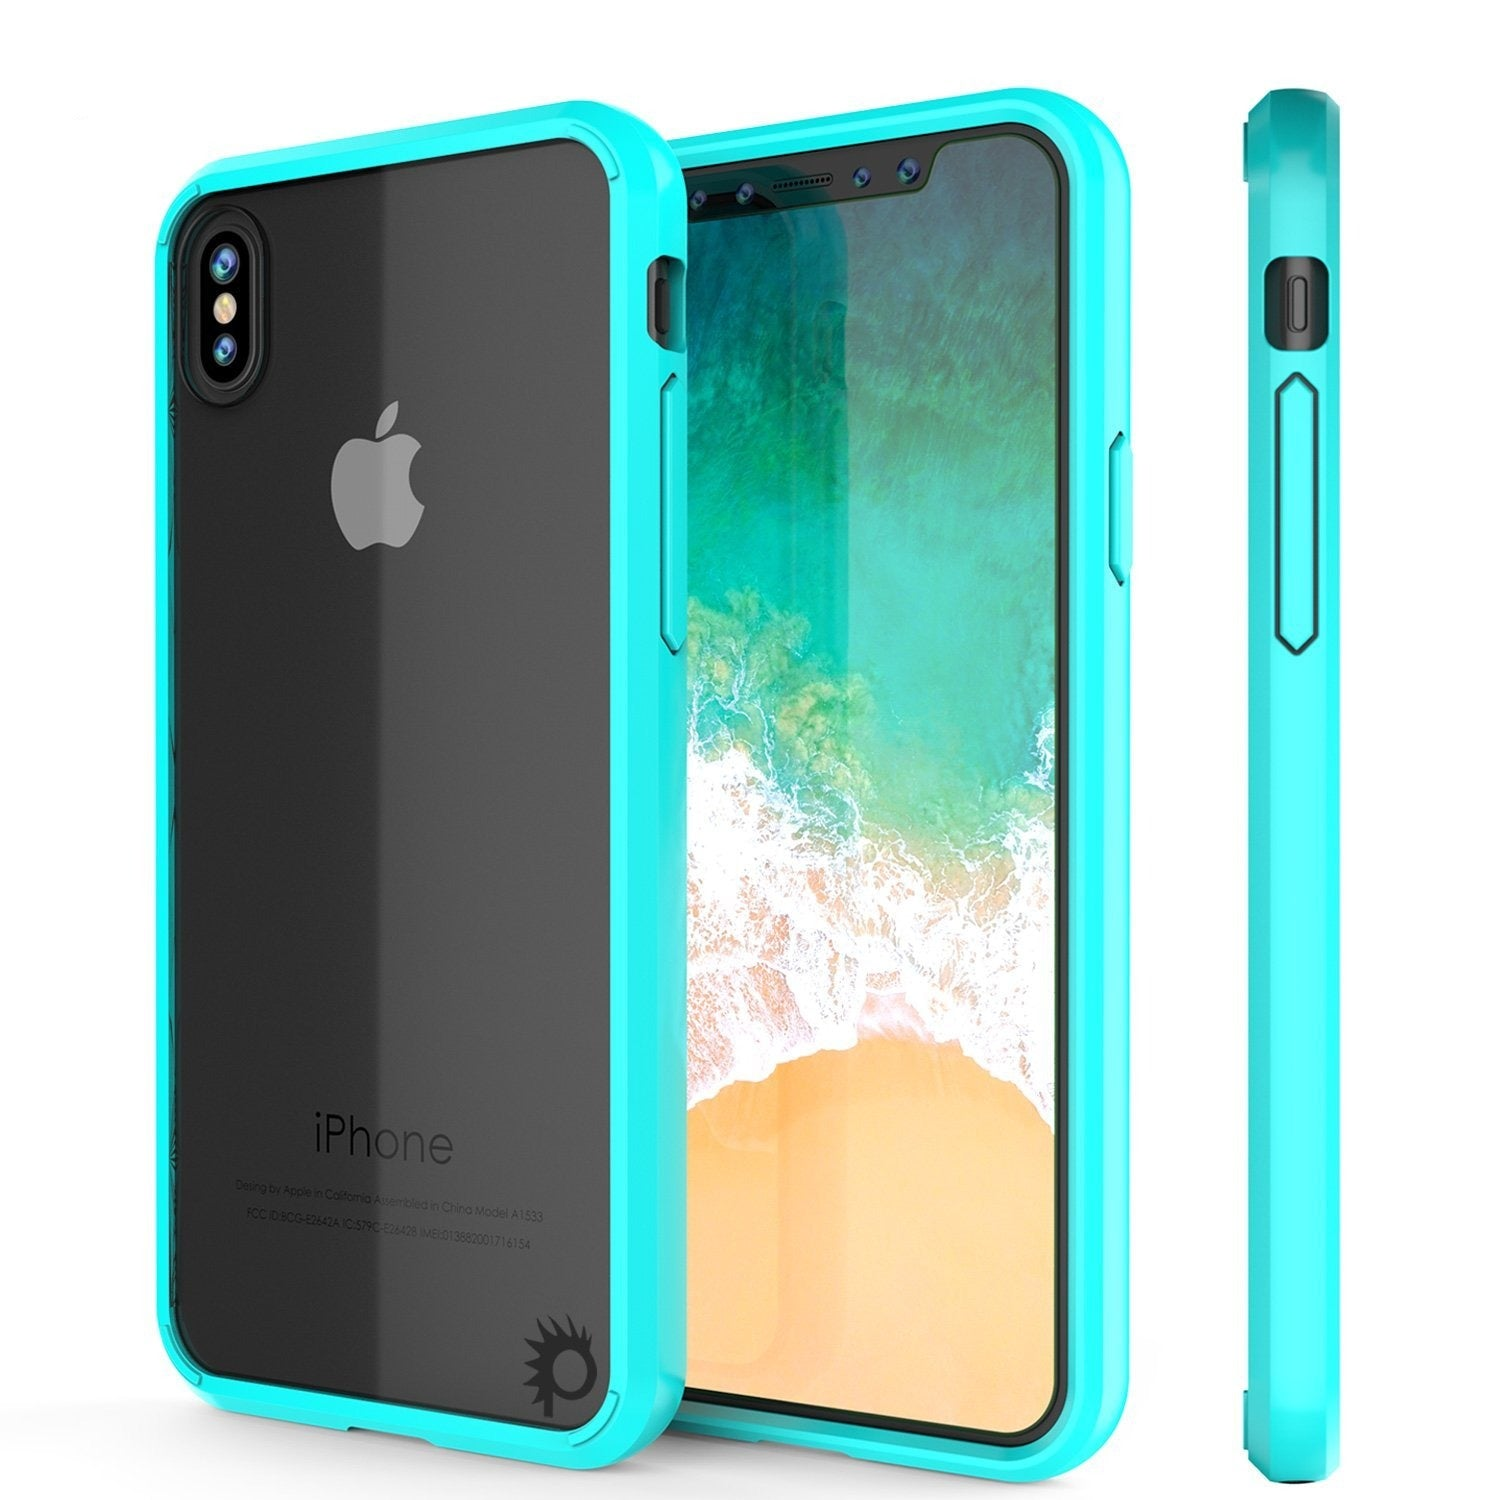 iPhone XR Case, PUNKcase [Lucid 2.0 Series] [Slim Fit] Armor Cover [Teal]